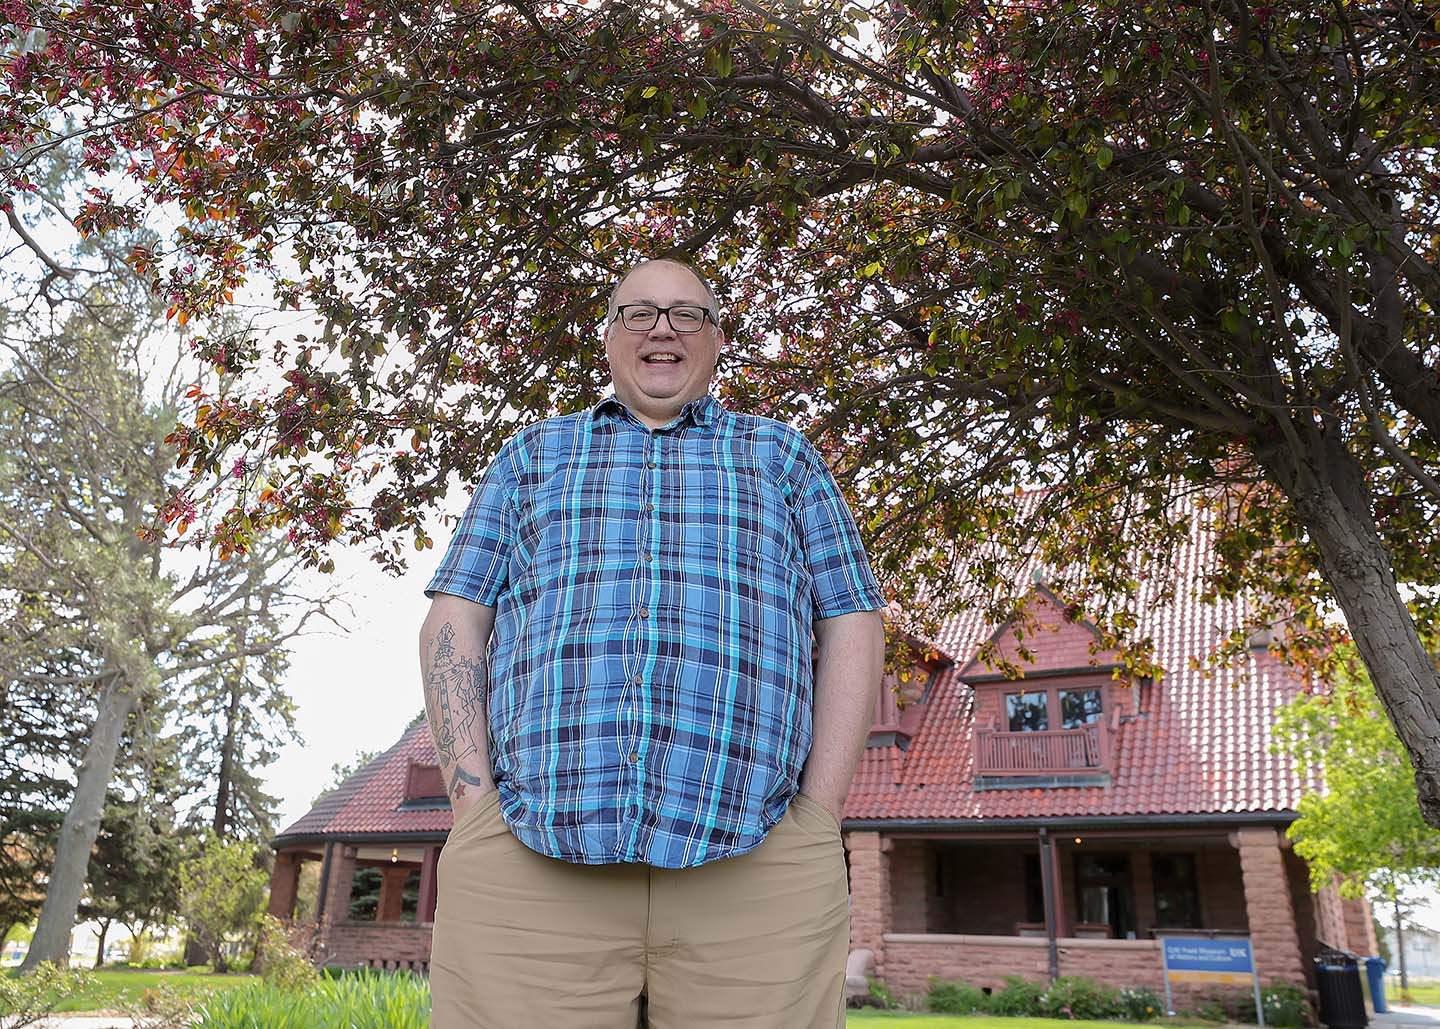 Sonny O'Connor would like to pursue a master's degree in history through UNK and eventually work for a museum. He's pictured in front of the G.W. Frank Museum of History and Culture on the UNK campus. (Photo by Erika Pritchard, UNK Communications)